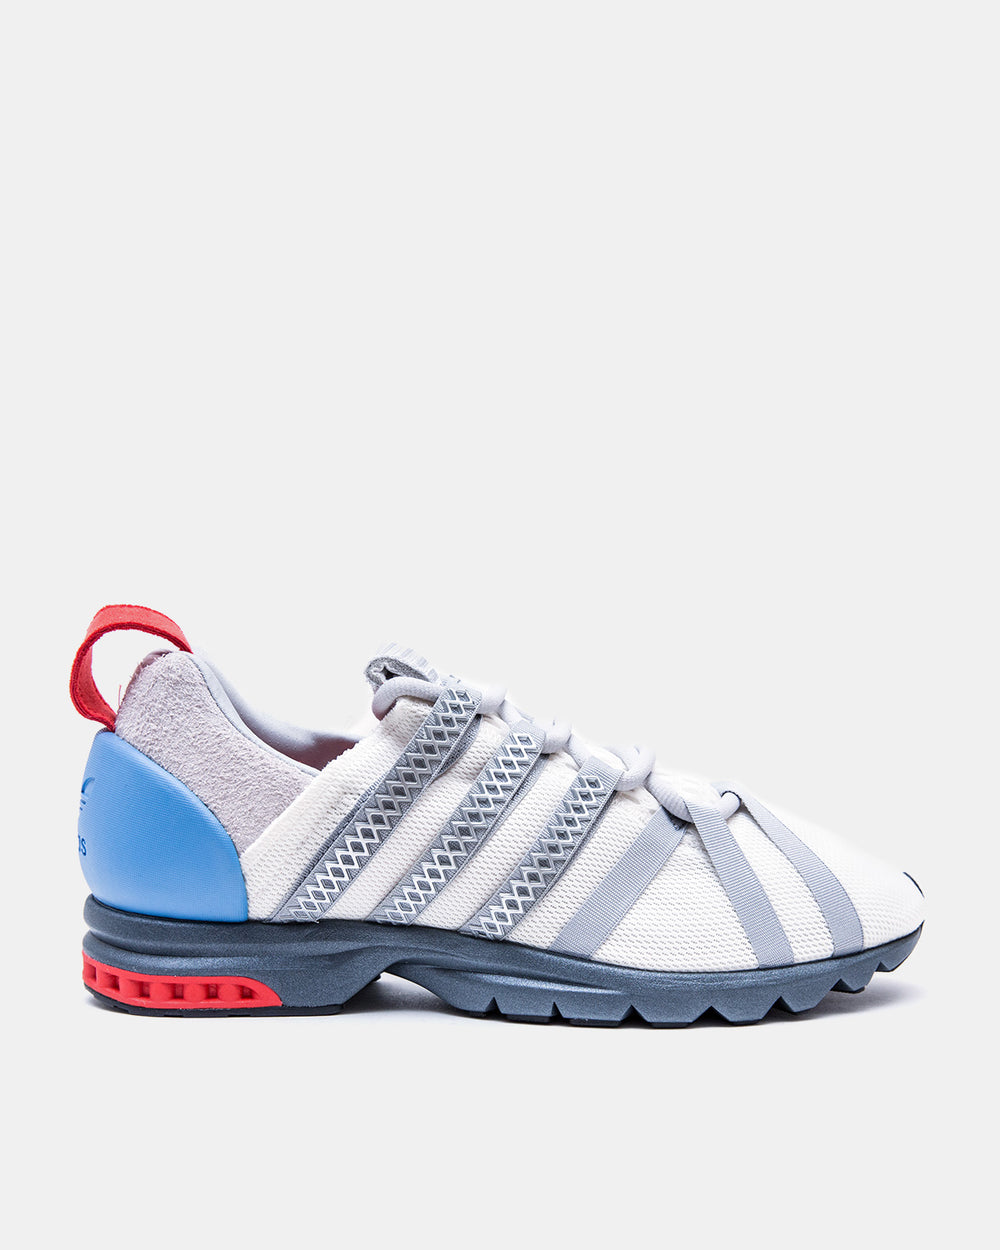 adidas Consortium Adistar Comp A//D 'adidas Parallel Dimension' Pack (Cream White | Chalk White | Clear Onix)